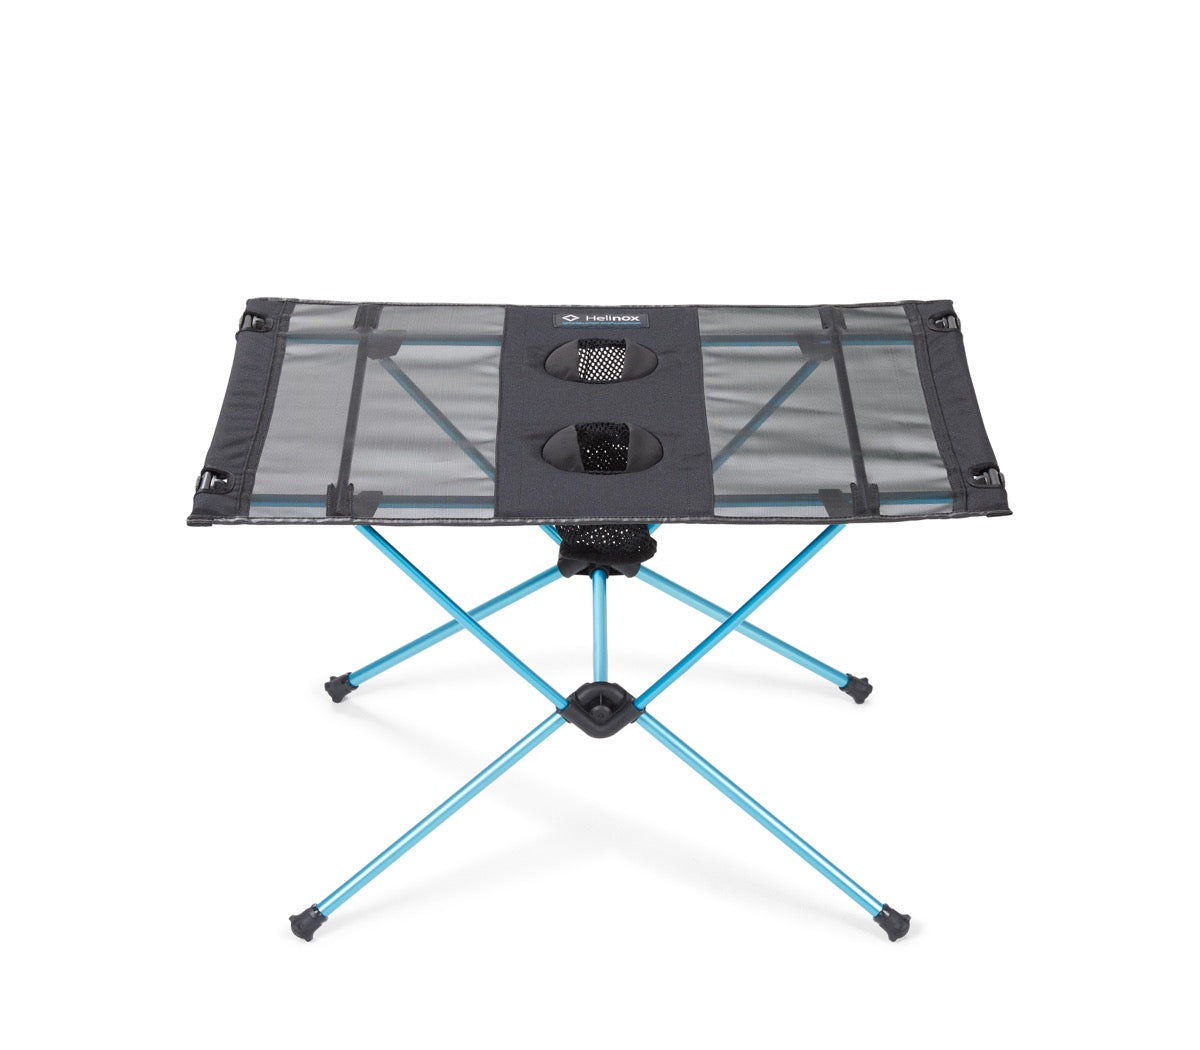 Helinox Tables